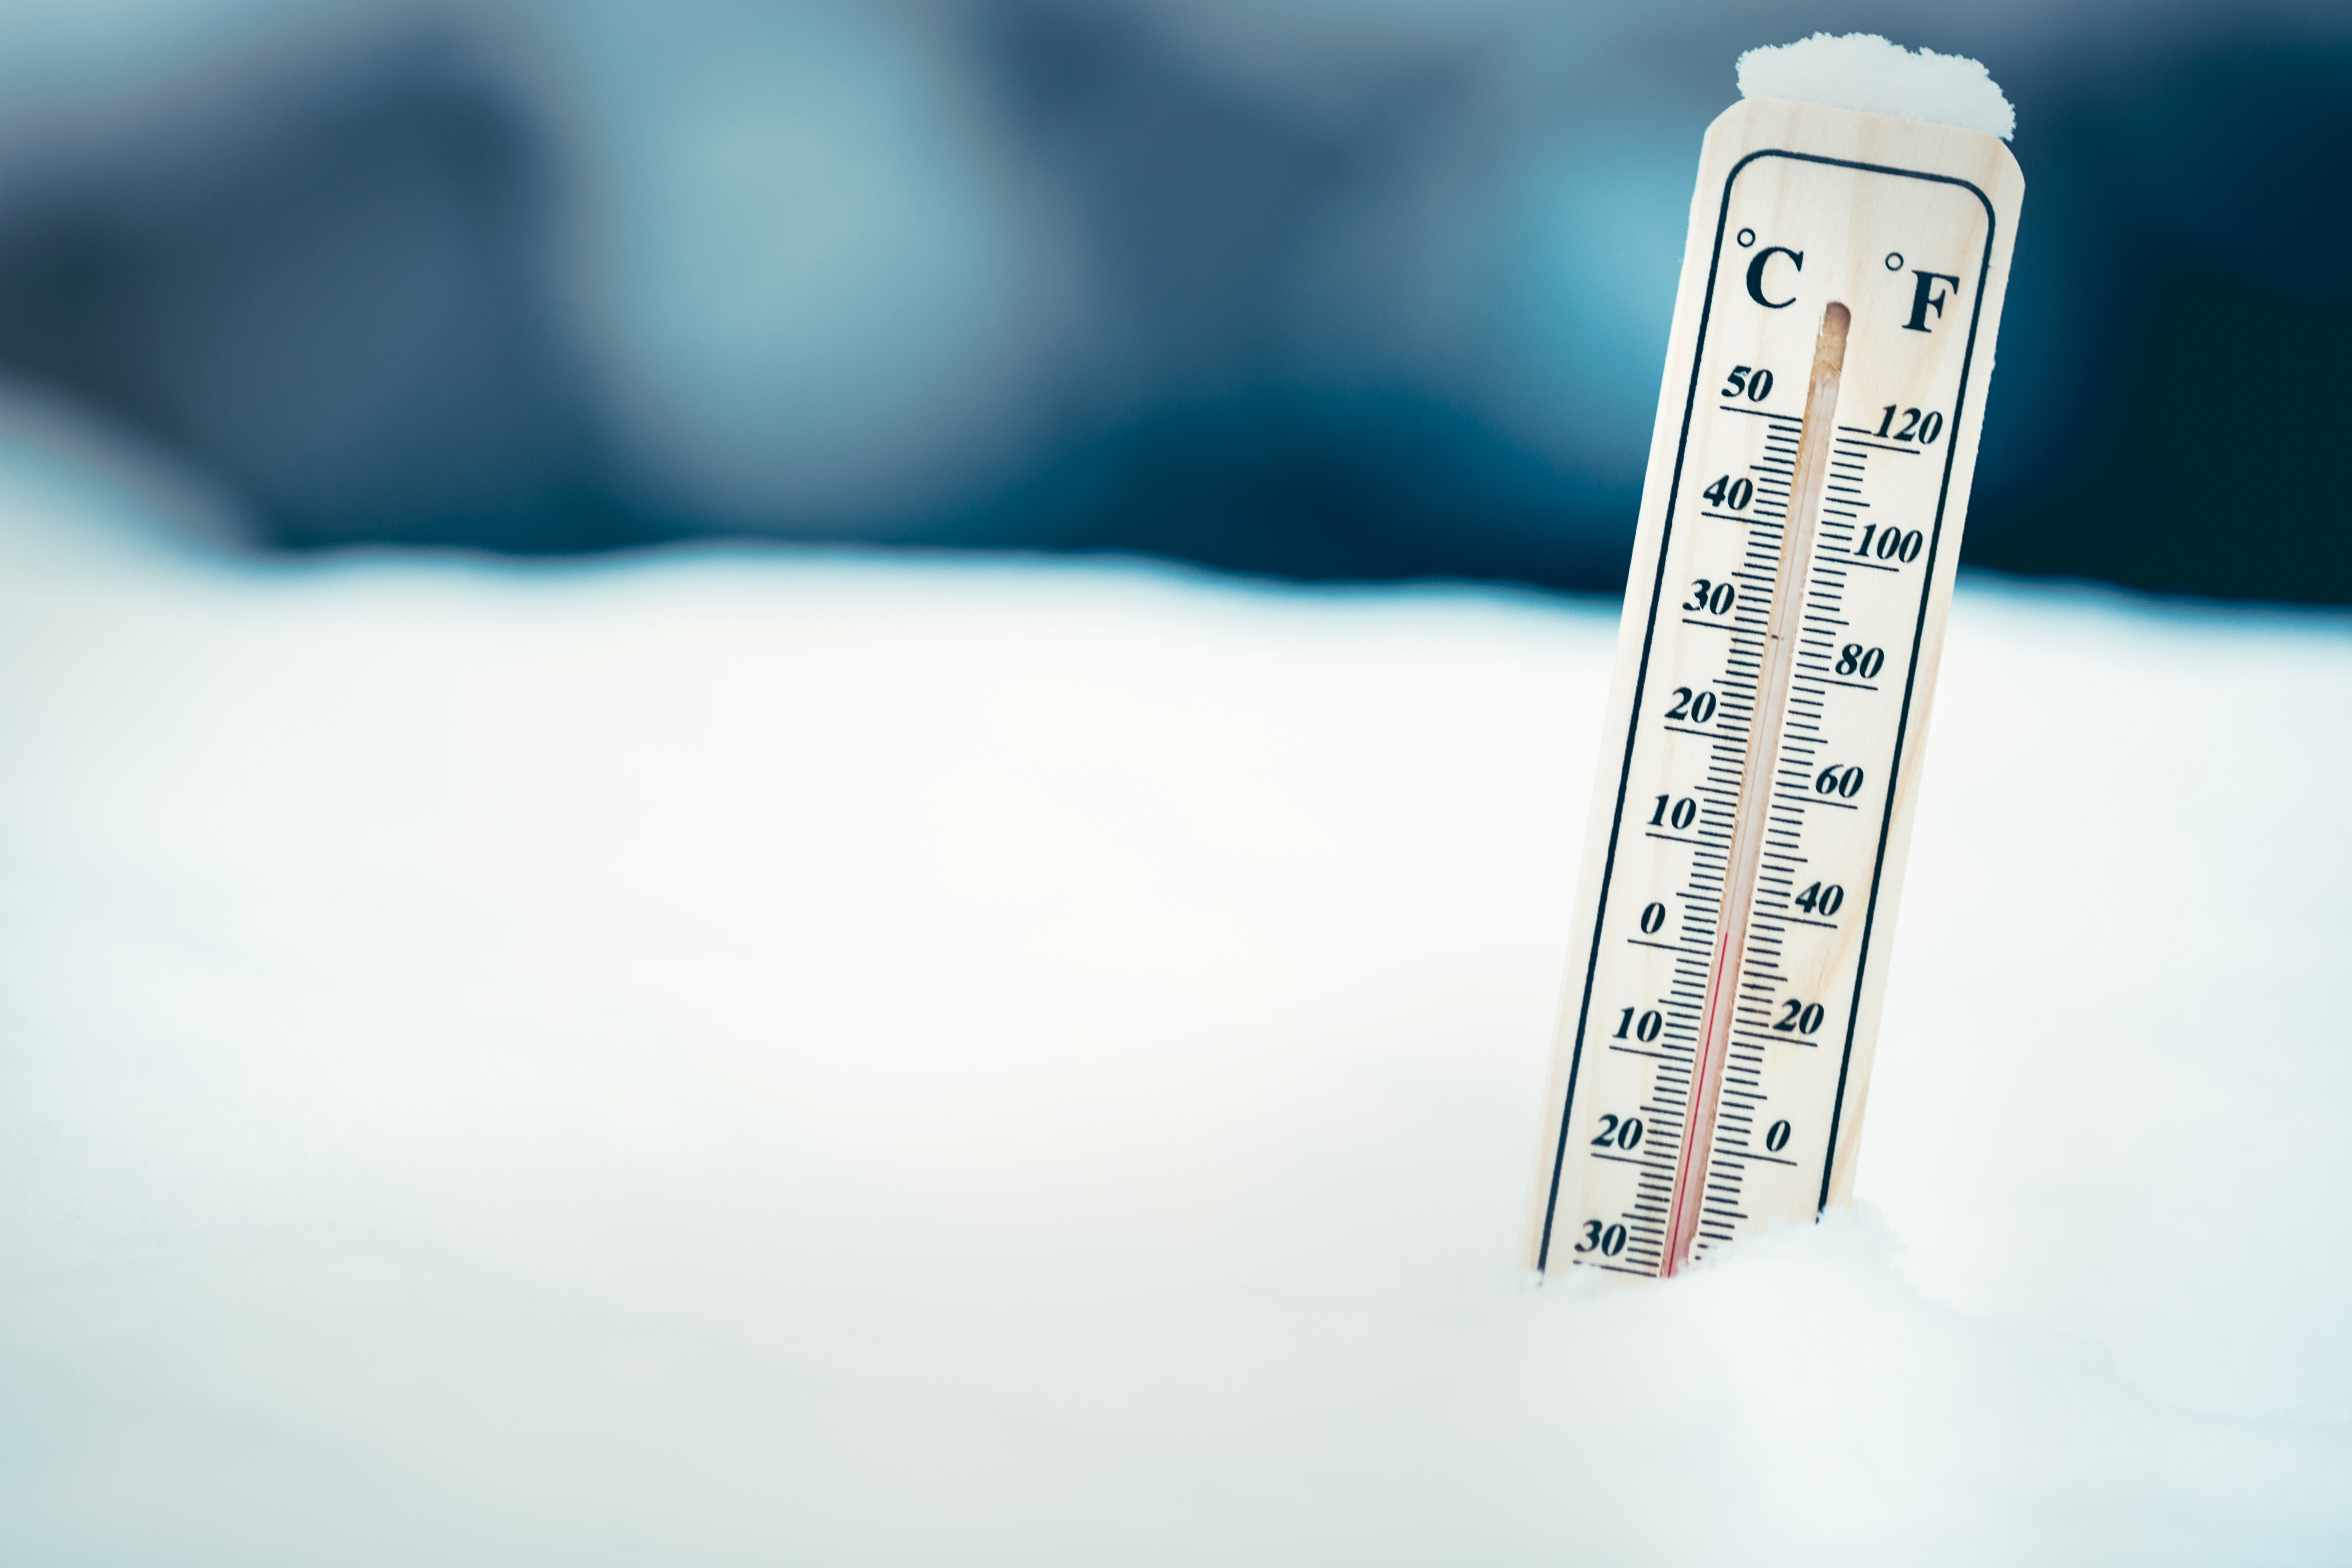 How to Convert Negative Celsius to Fahrenheit